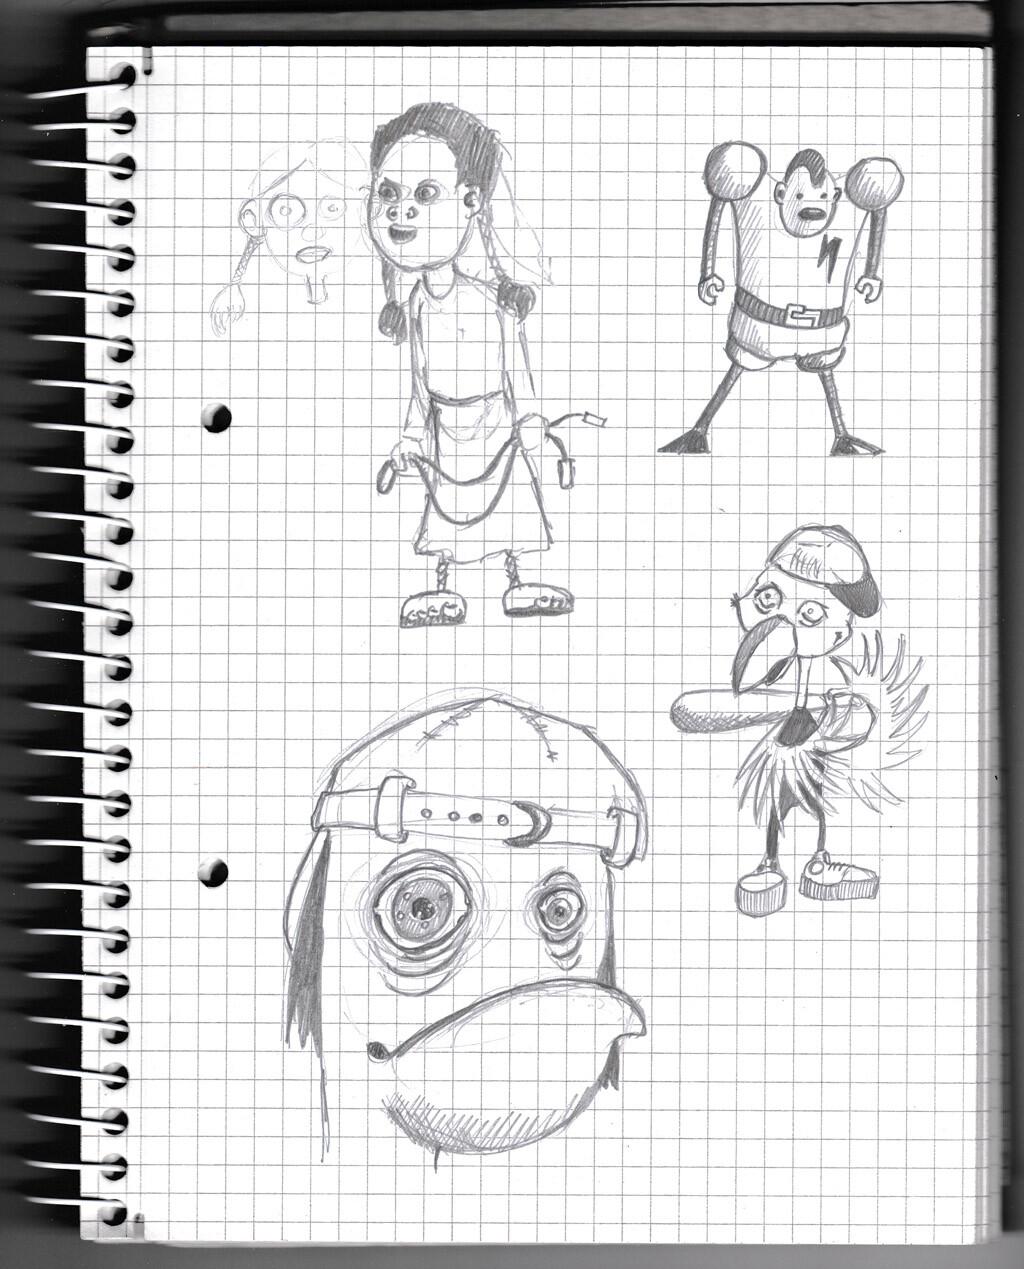 character, sketch, pencil, monster, creature, girl,